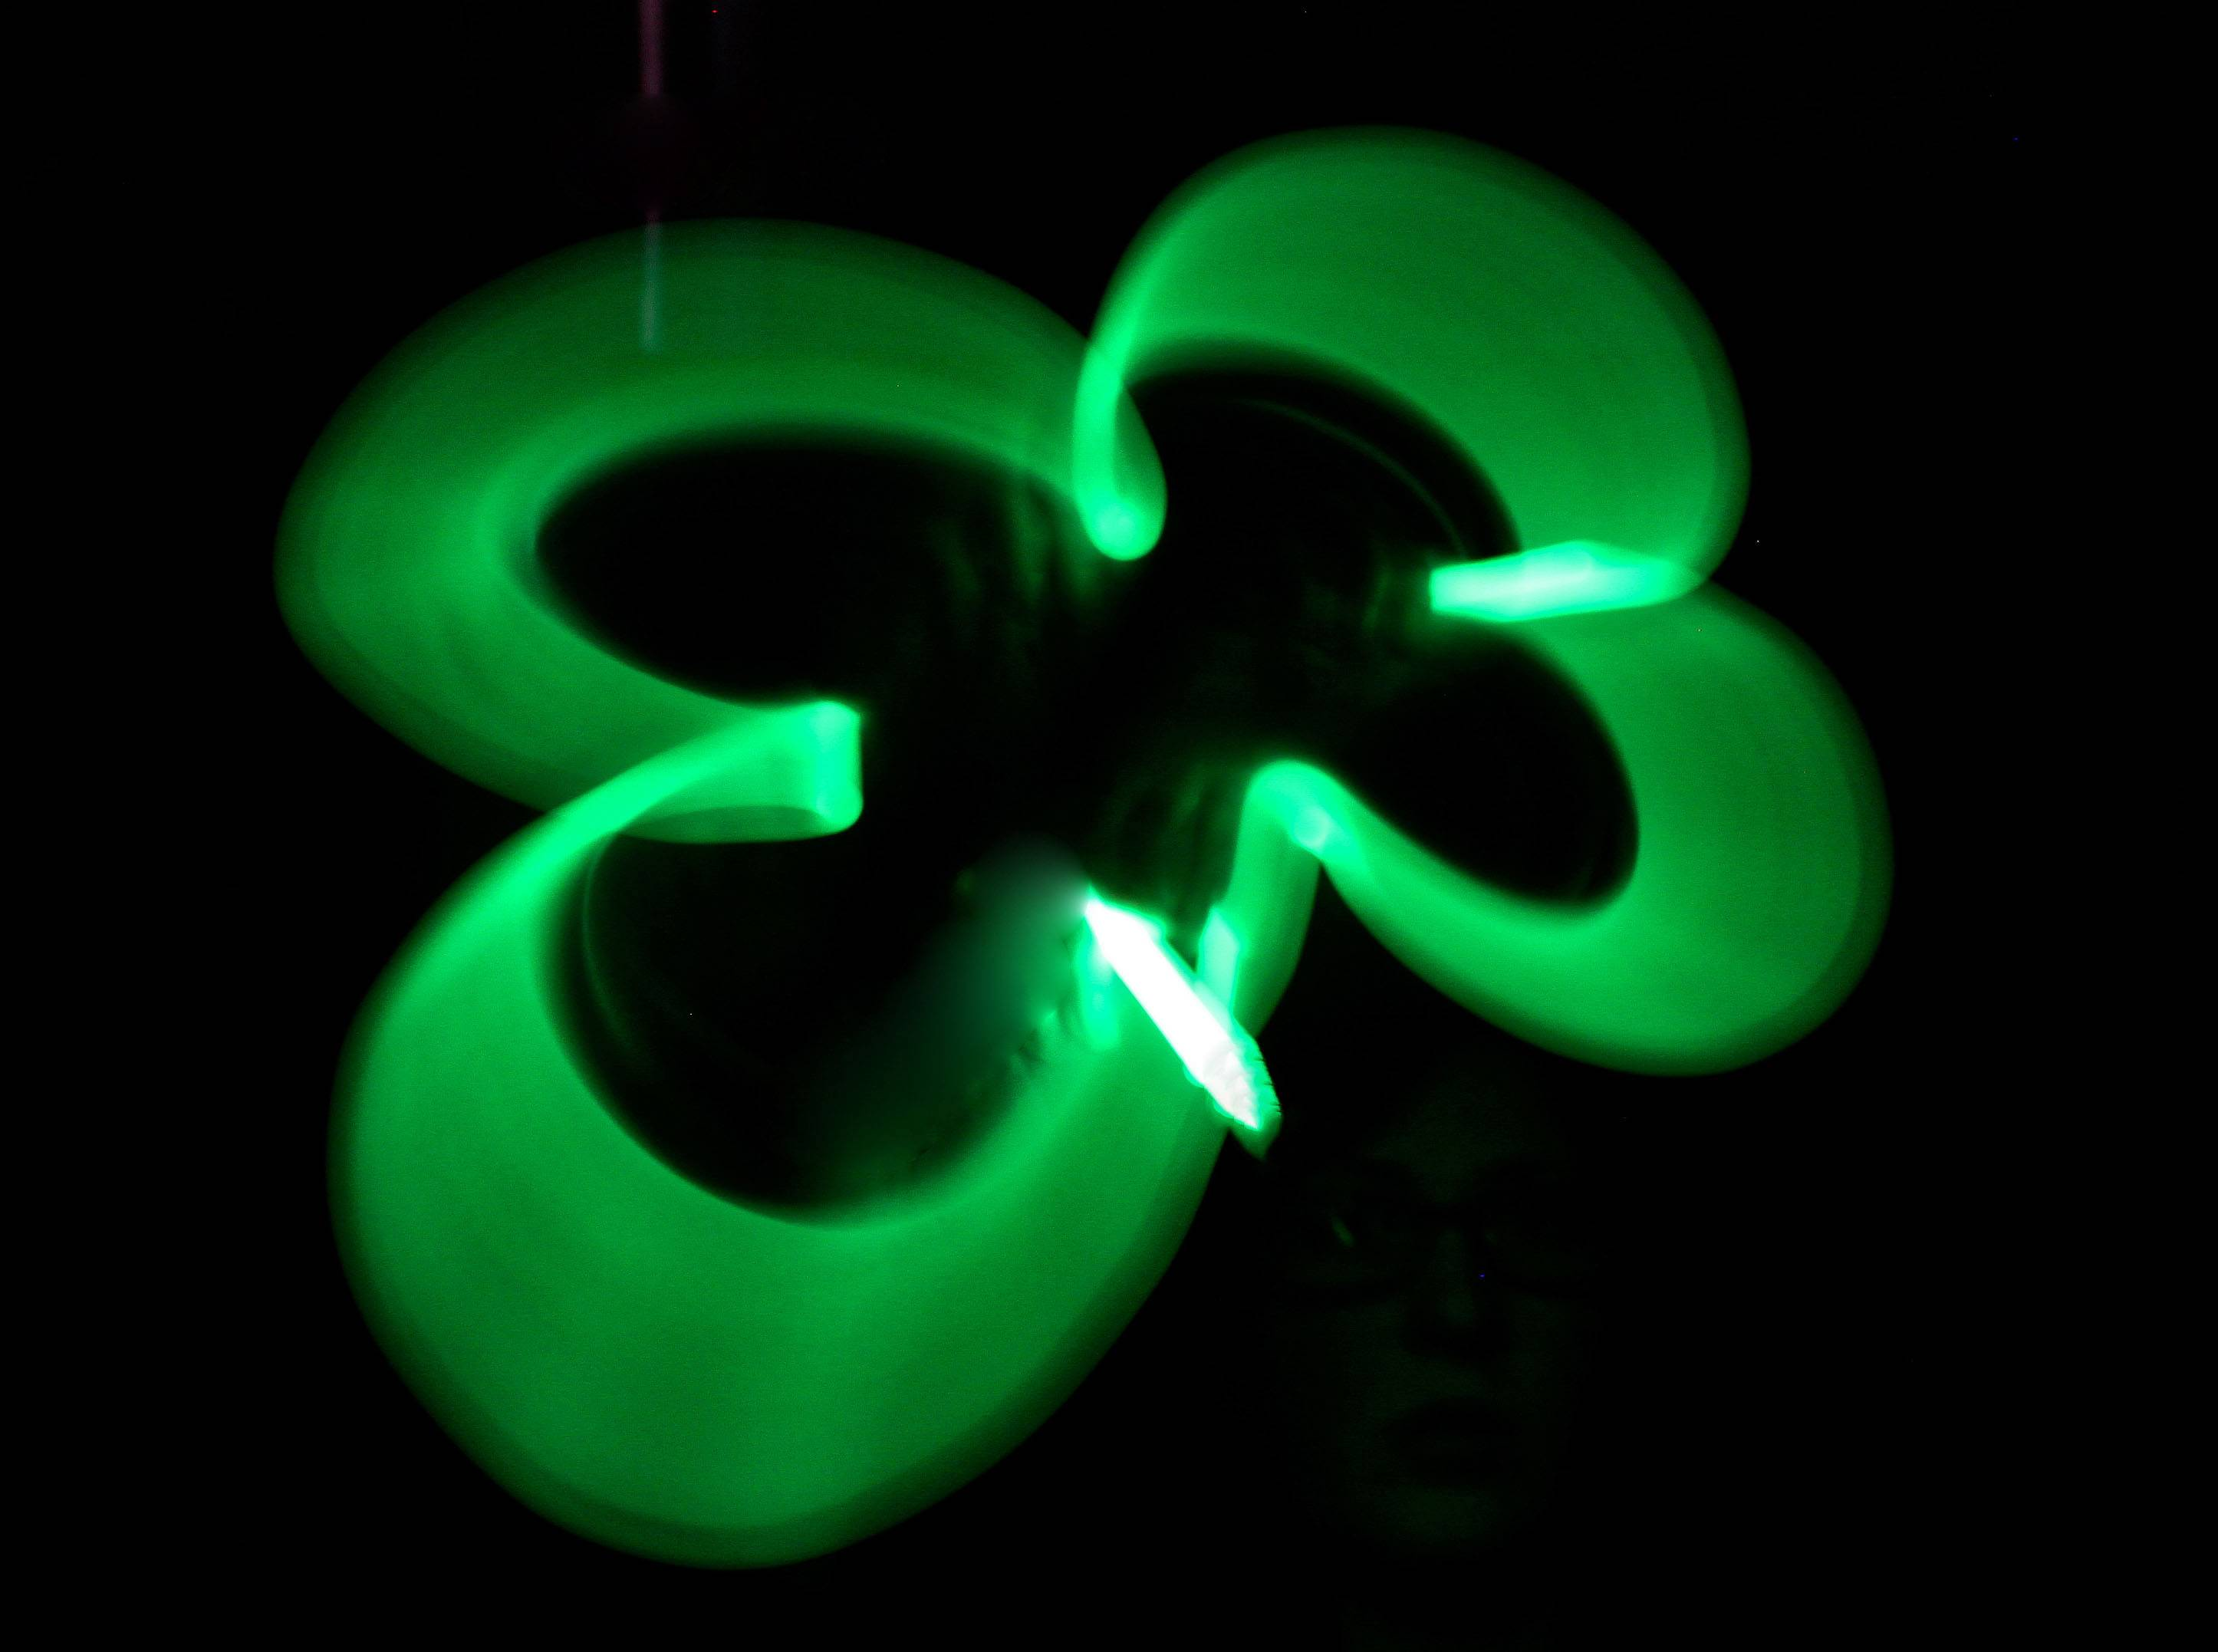 I purchased some glow sticks on a recent shopping trip. I waited until sundown and then turned off the lights and made my room completely dark. I opened up a green glow stick and took long exposure photos with the camera resting on my desk. I moved the stick in the shape of a four-leaf clover and ended the motion at the stem. The photo is a 5 second exposure.